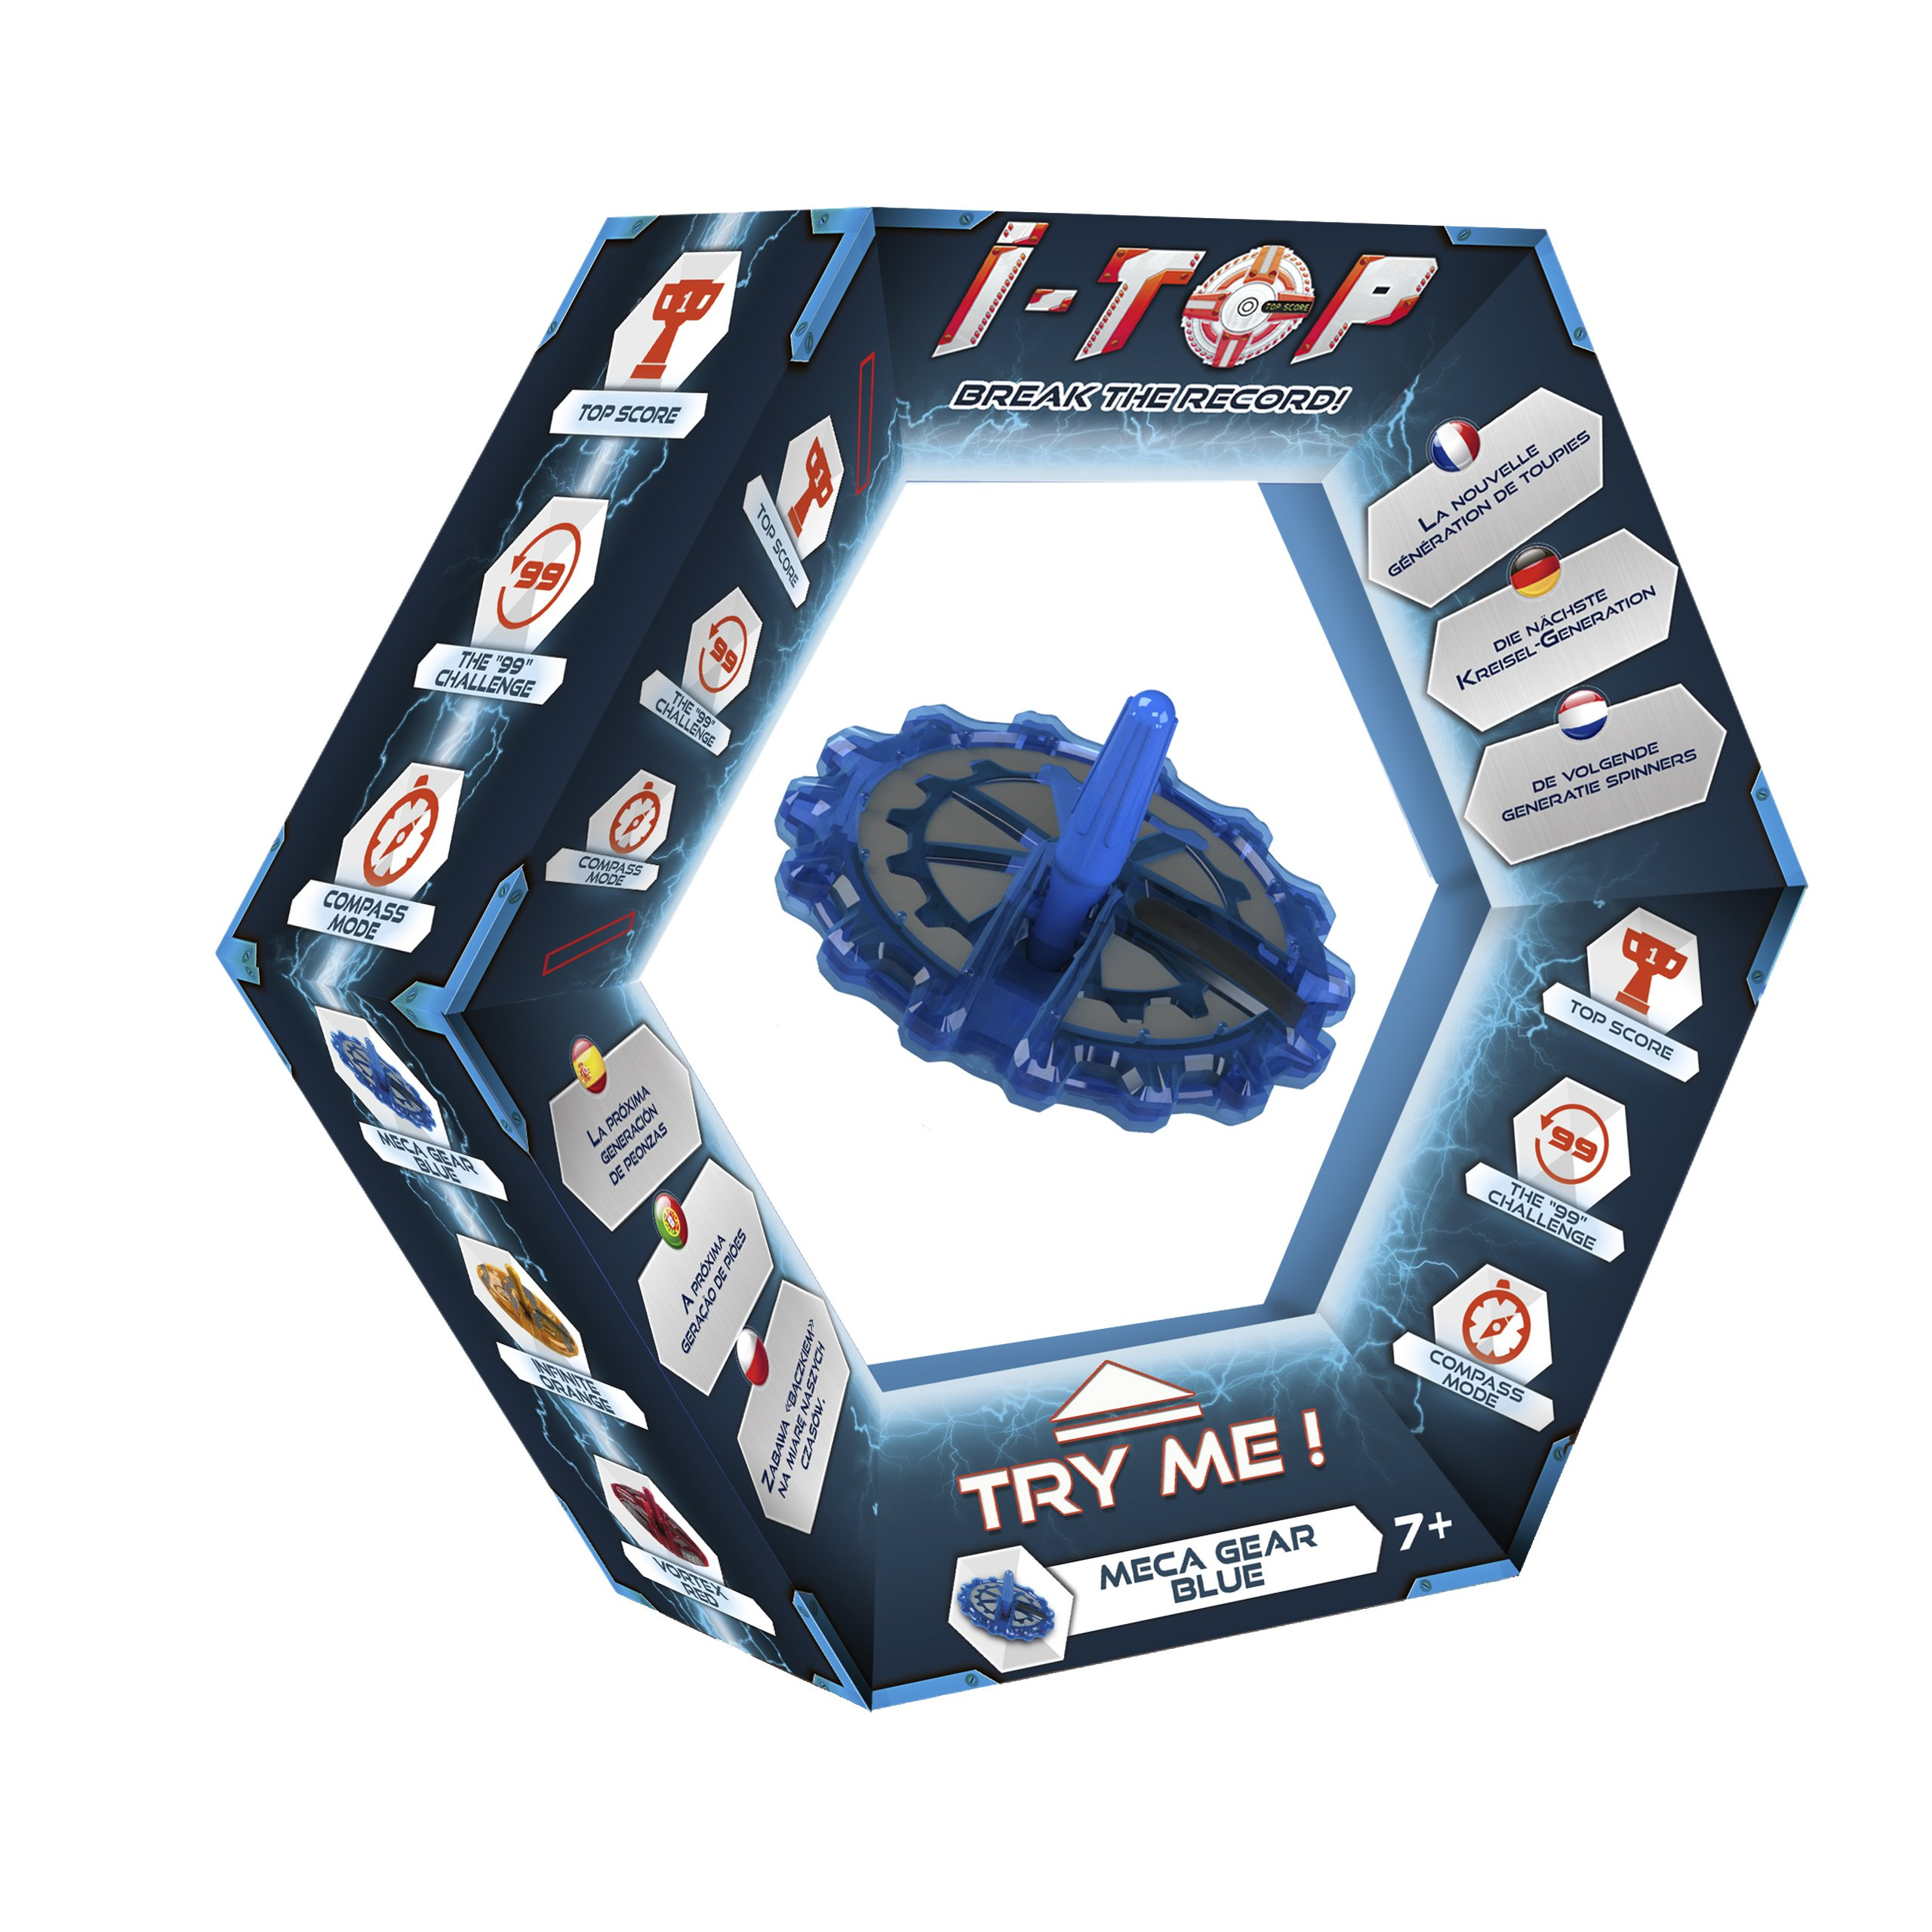 Modelco - ITOP Meca-Gear - Bleue product image